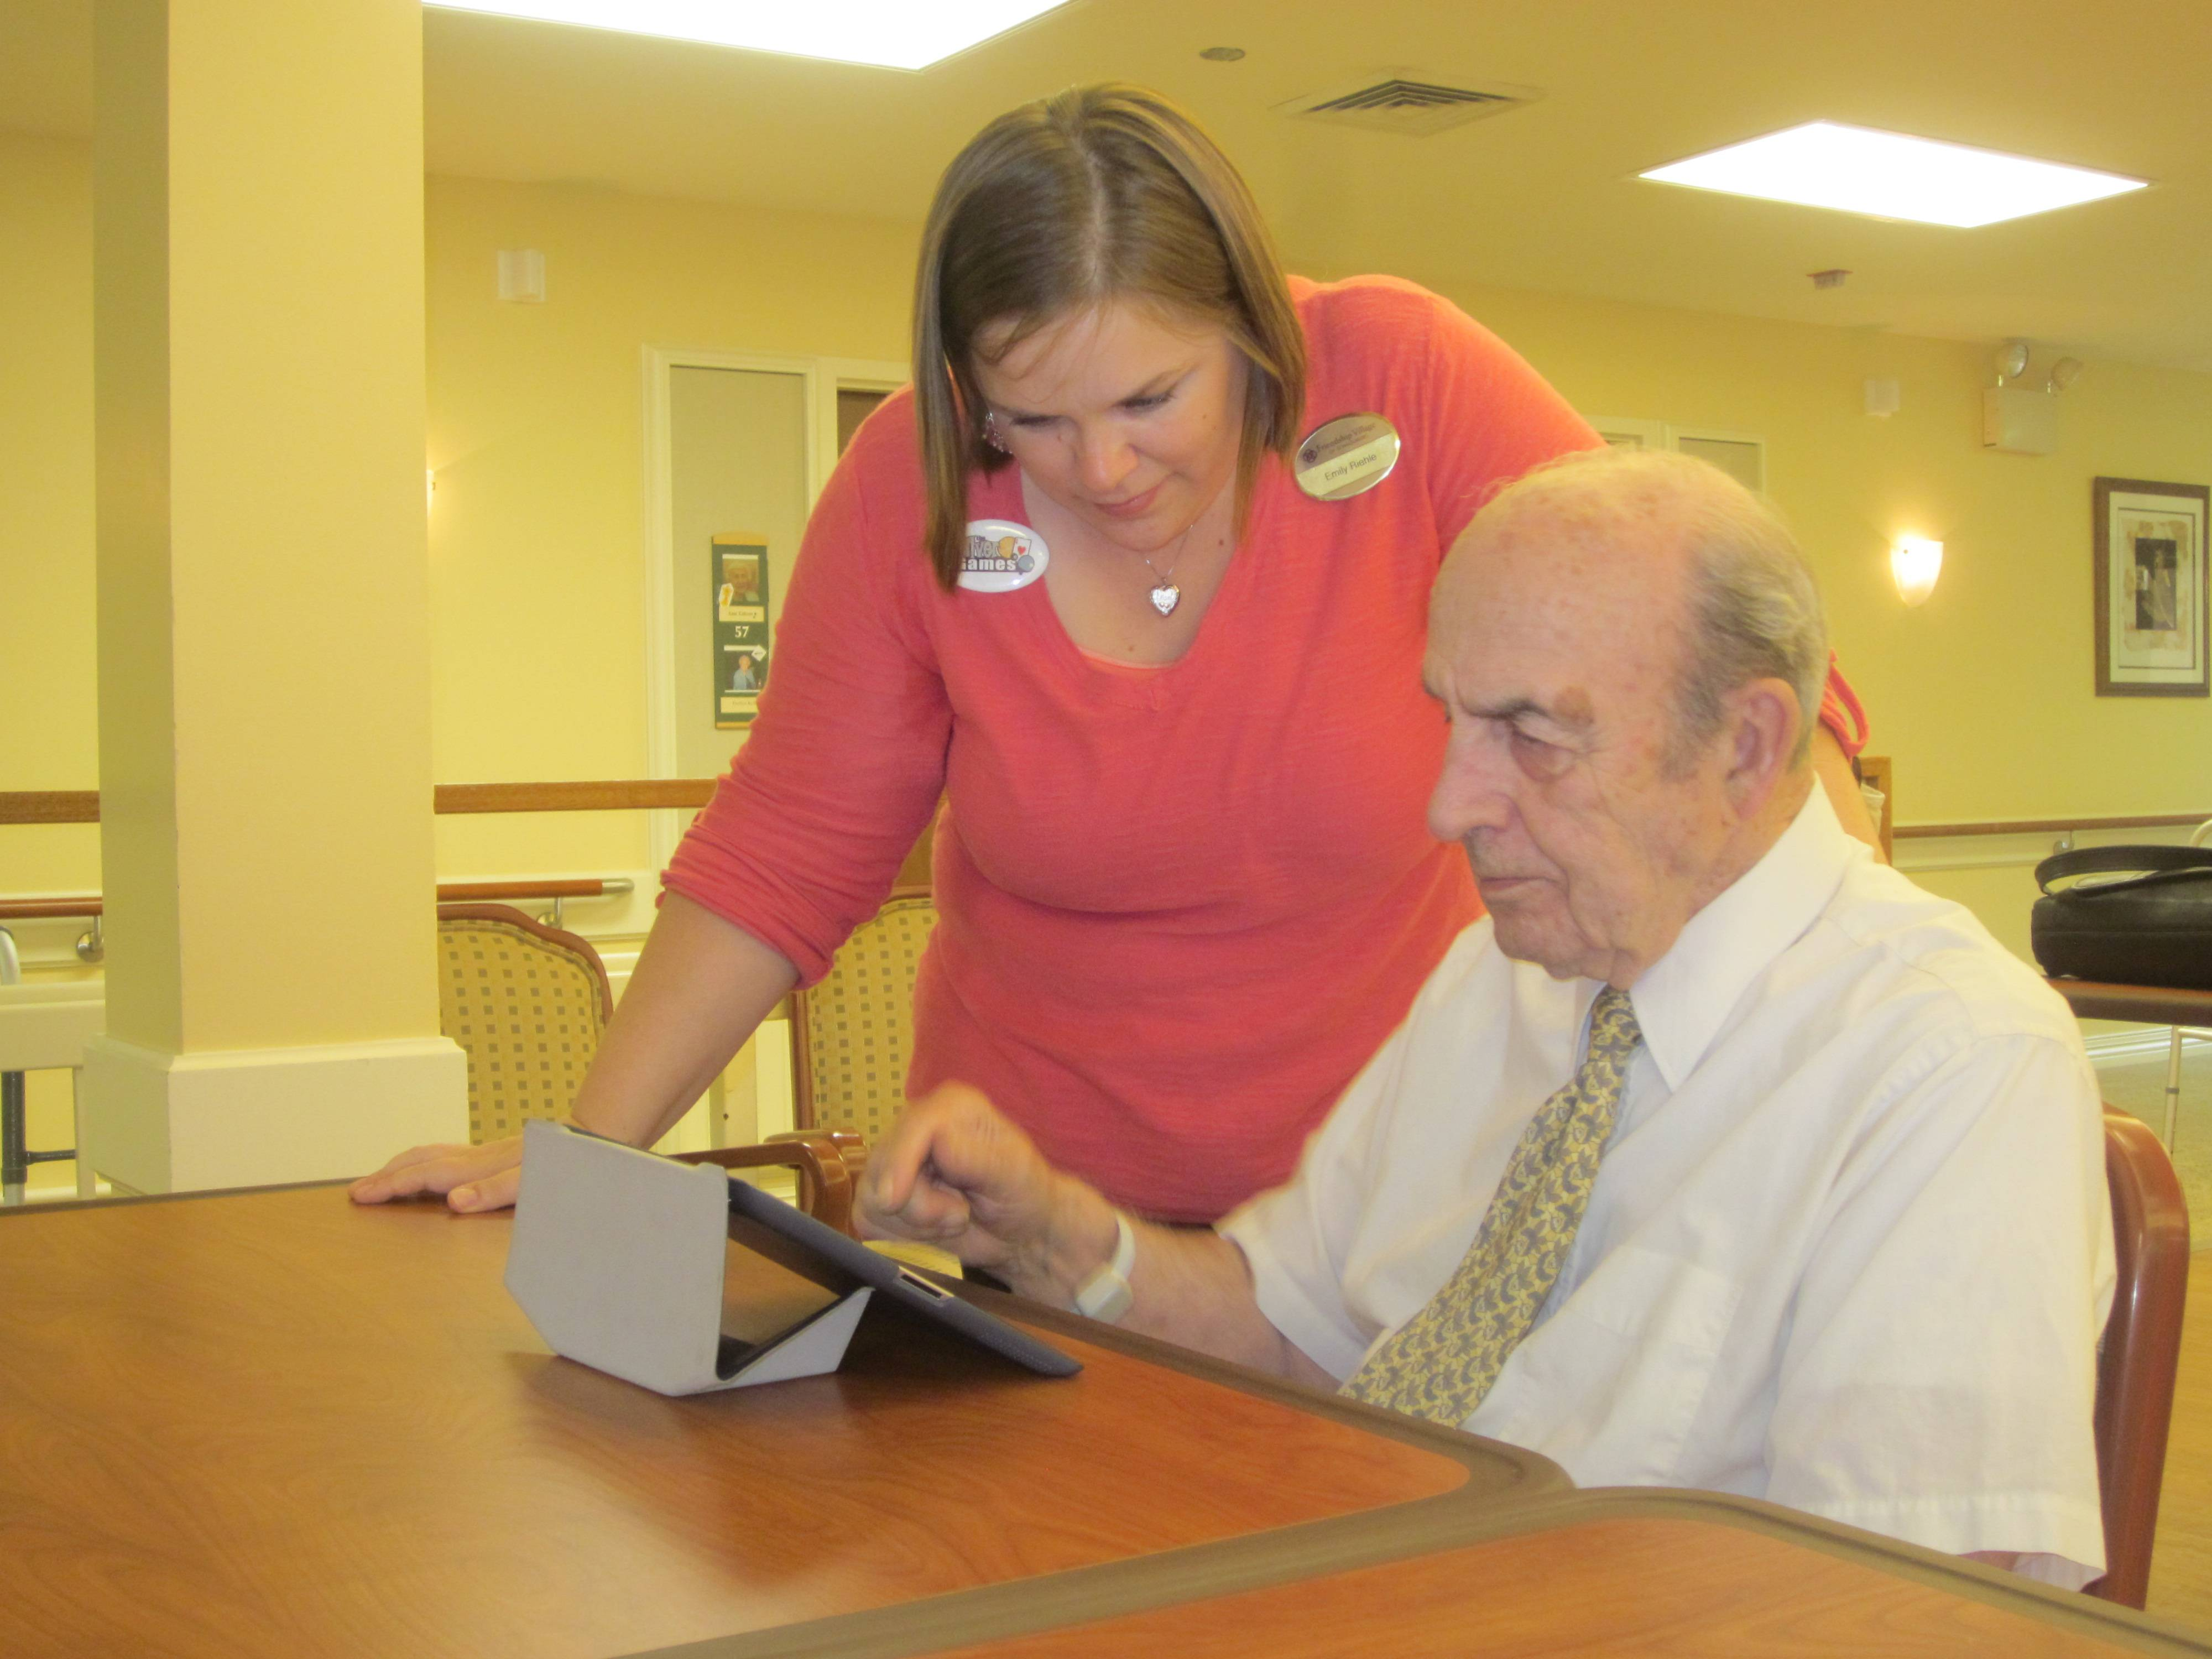 Emily Riehle, activities manager for Briarwood Healthcare working with a resident of the community on an iPad.